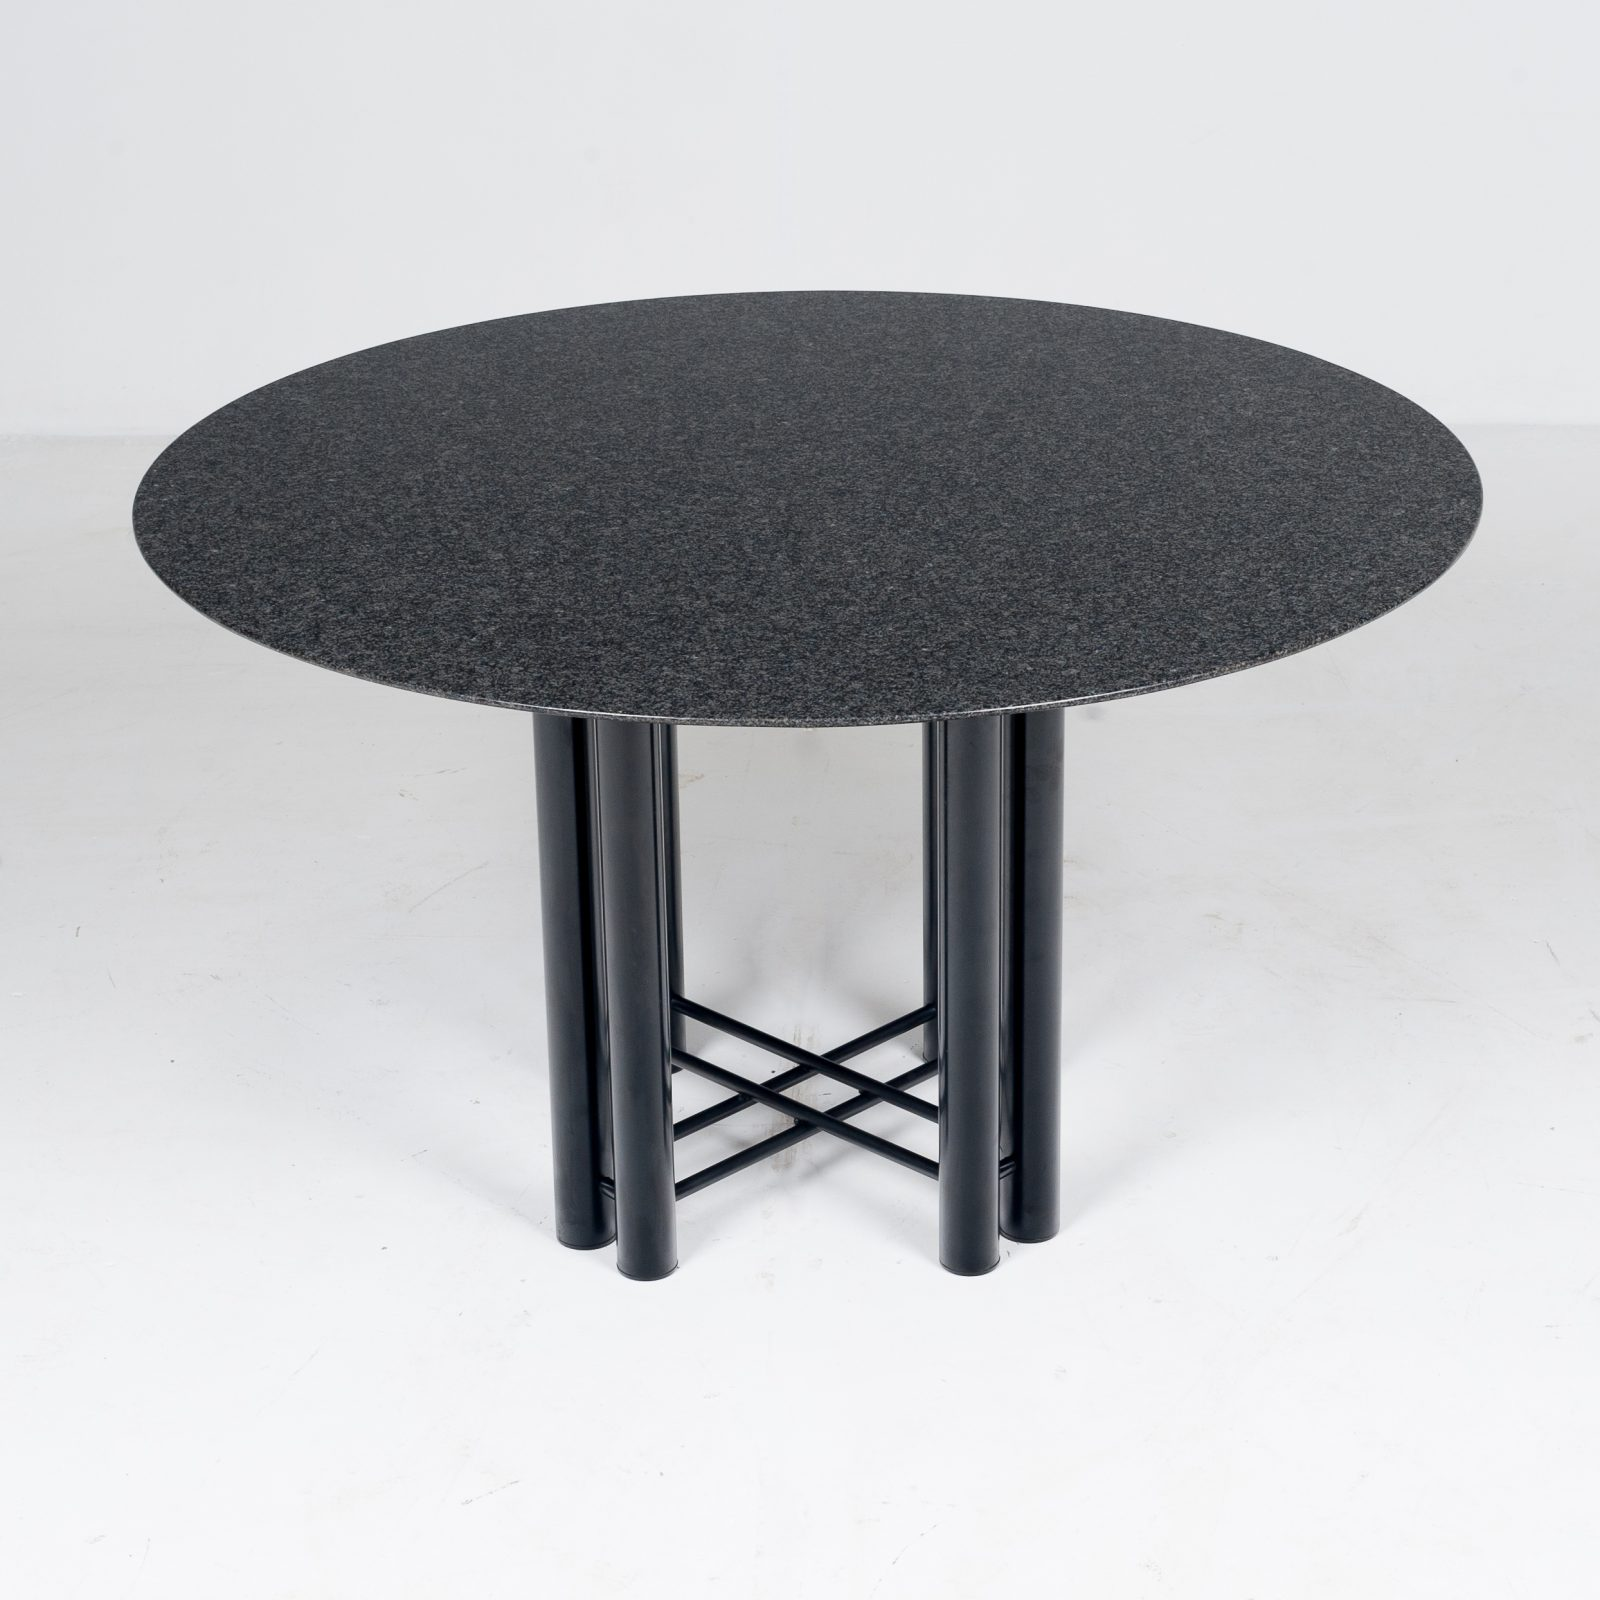 Round Dining Table By Metaform In Black Granite, 1970s, The Netherlands2